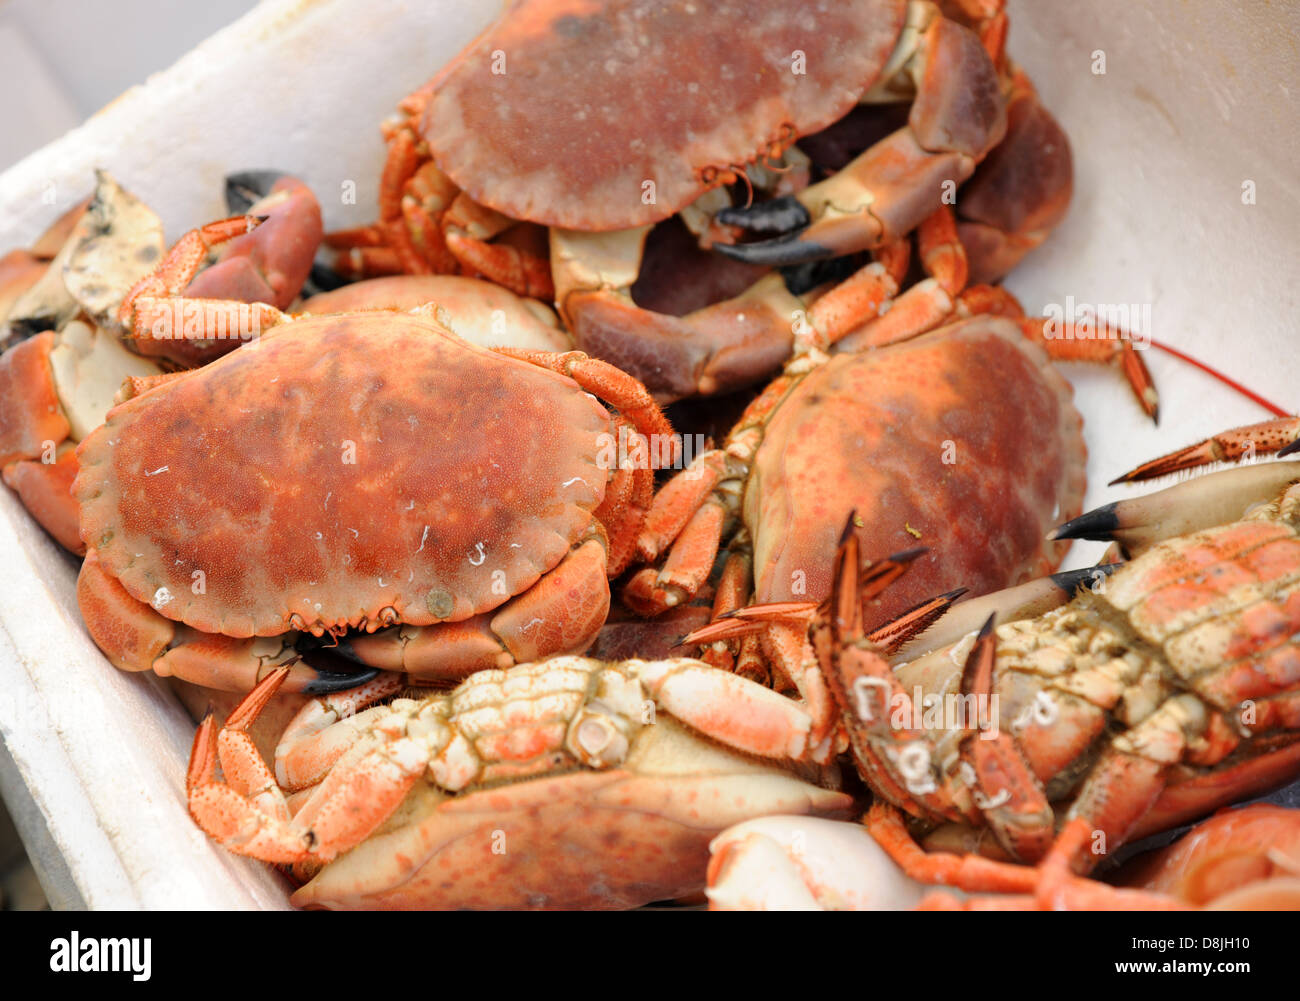 Crab, cooked and ready for the table. - Stock Image